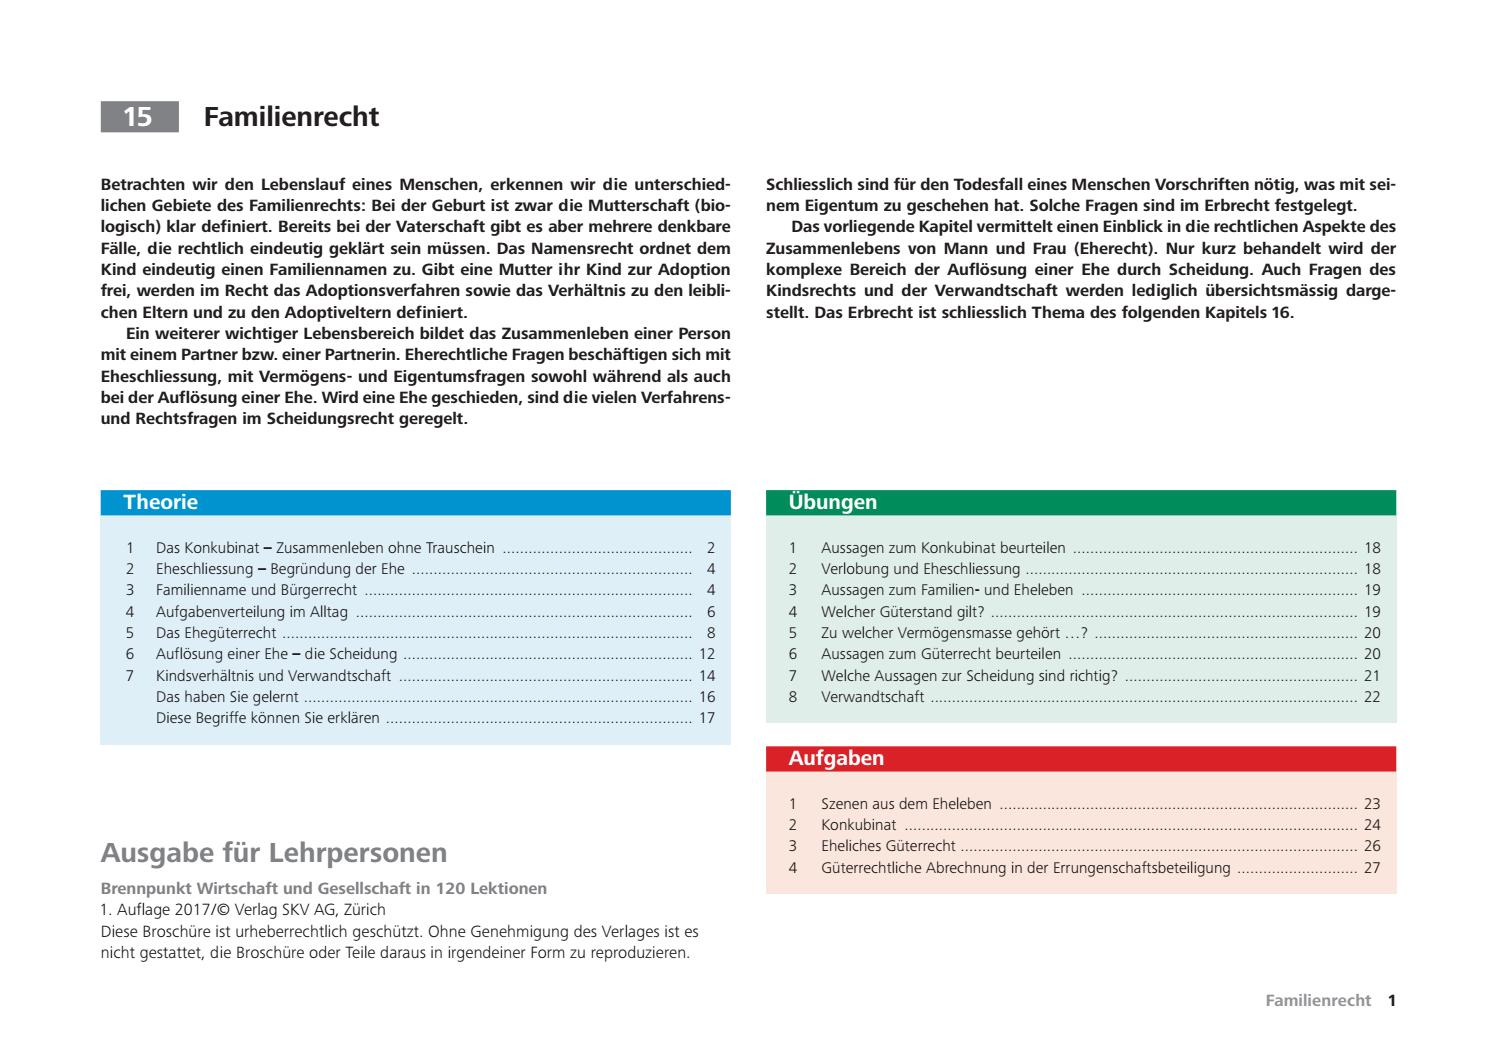 15 familienrecht 120 lektionen lp 1a 2017 low by STR teachware - issuu